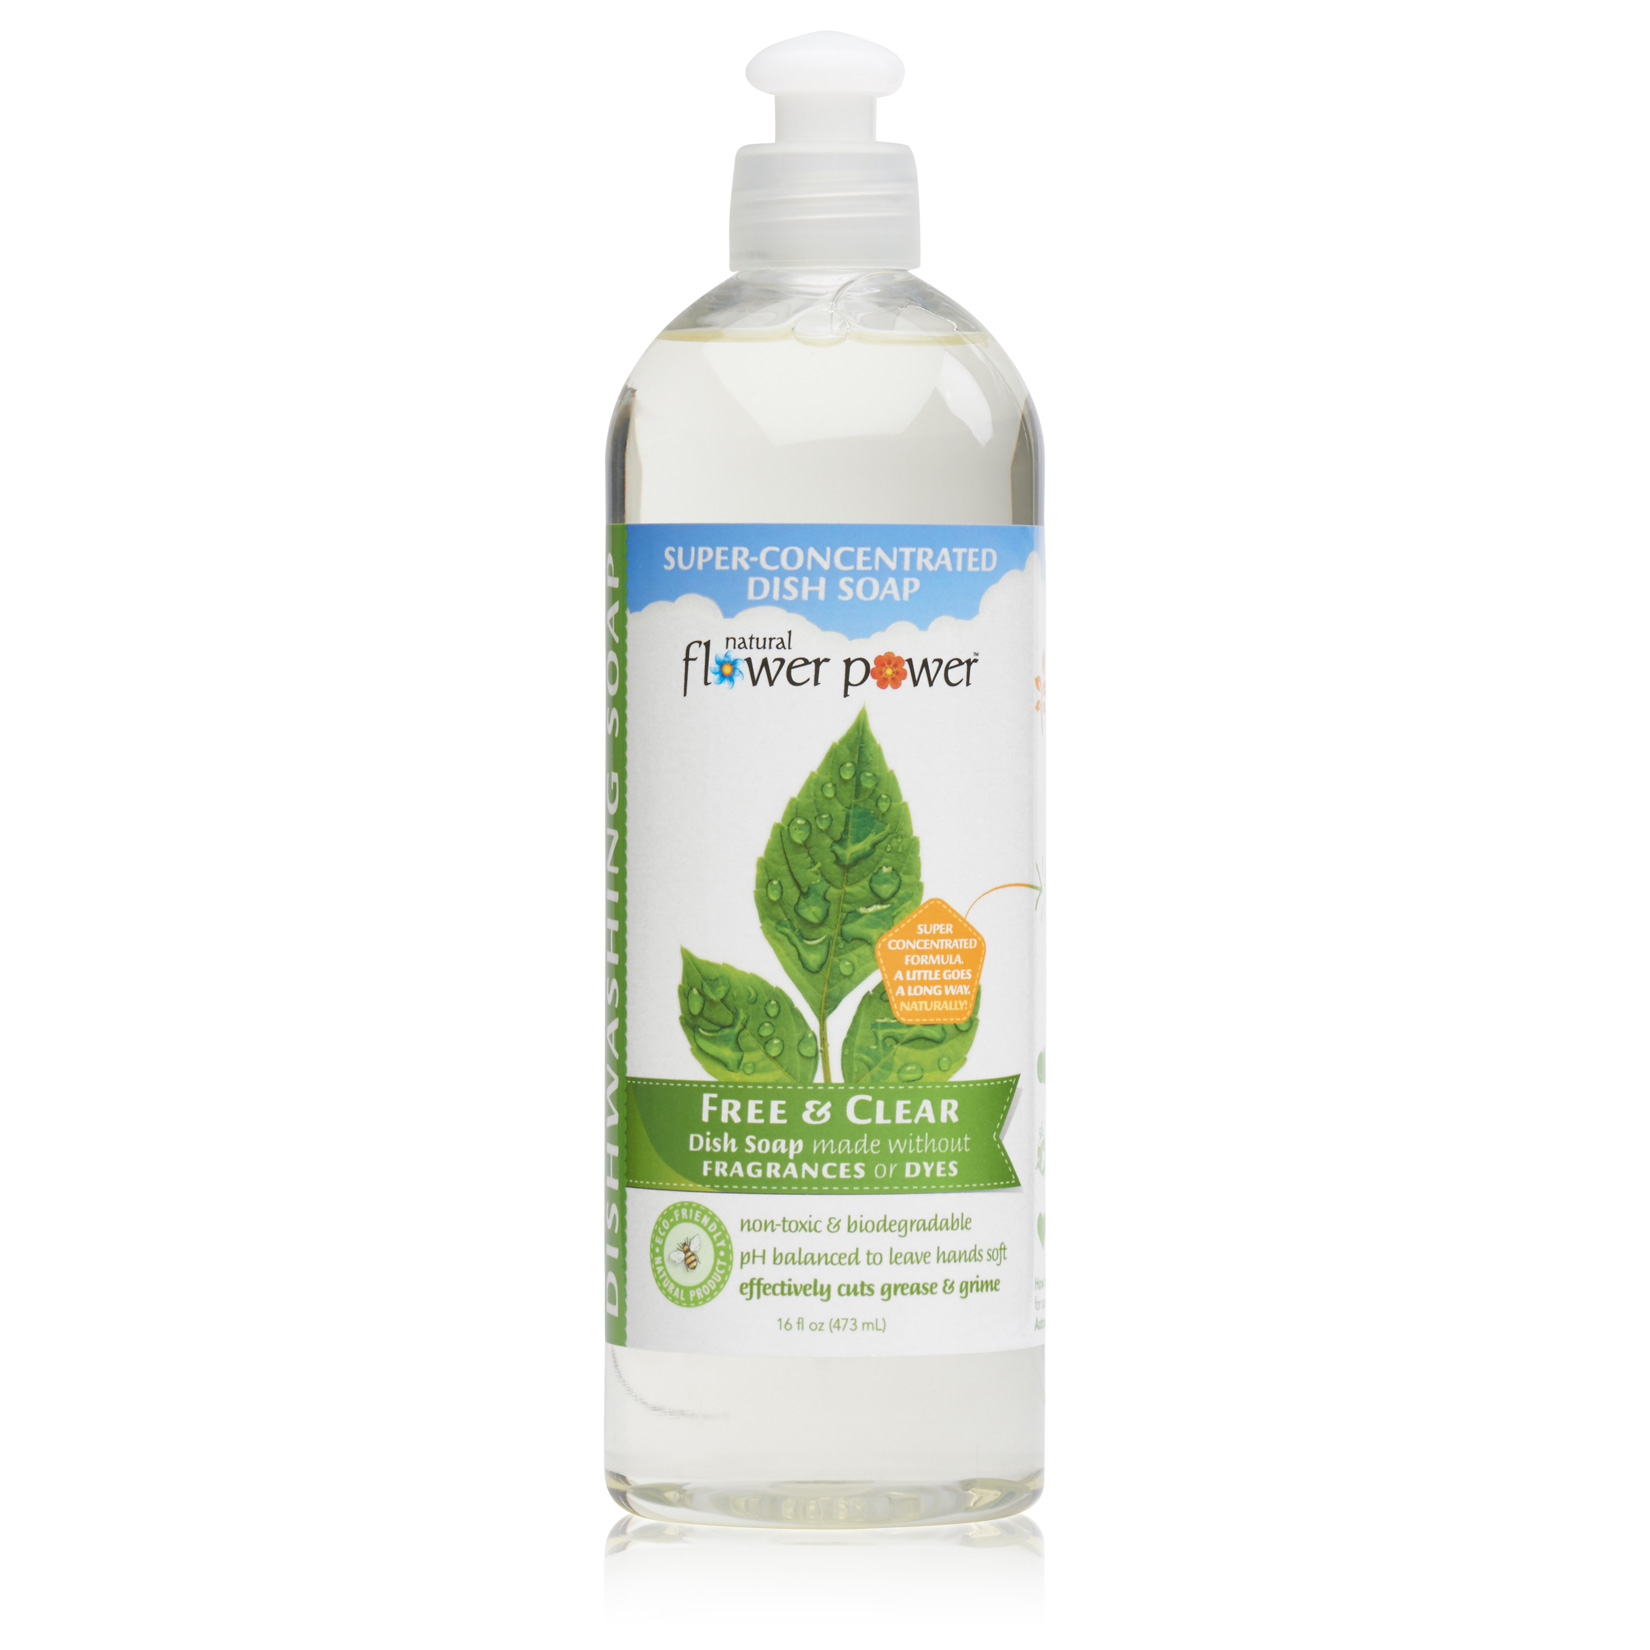 Natural Dish Soap Free & Clear – Front